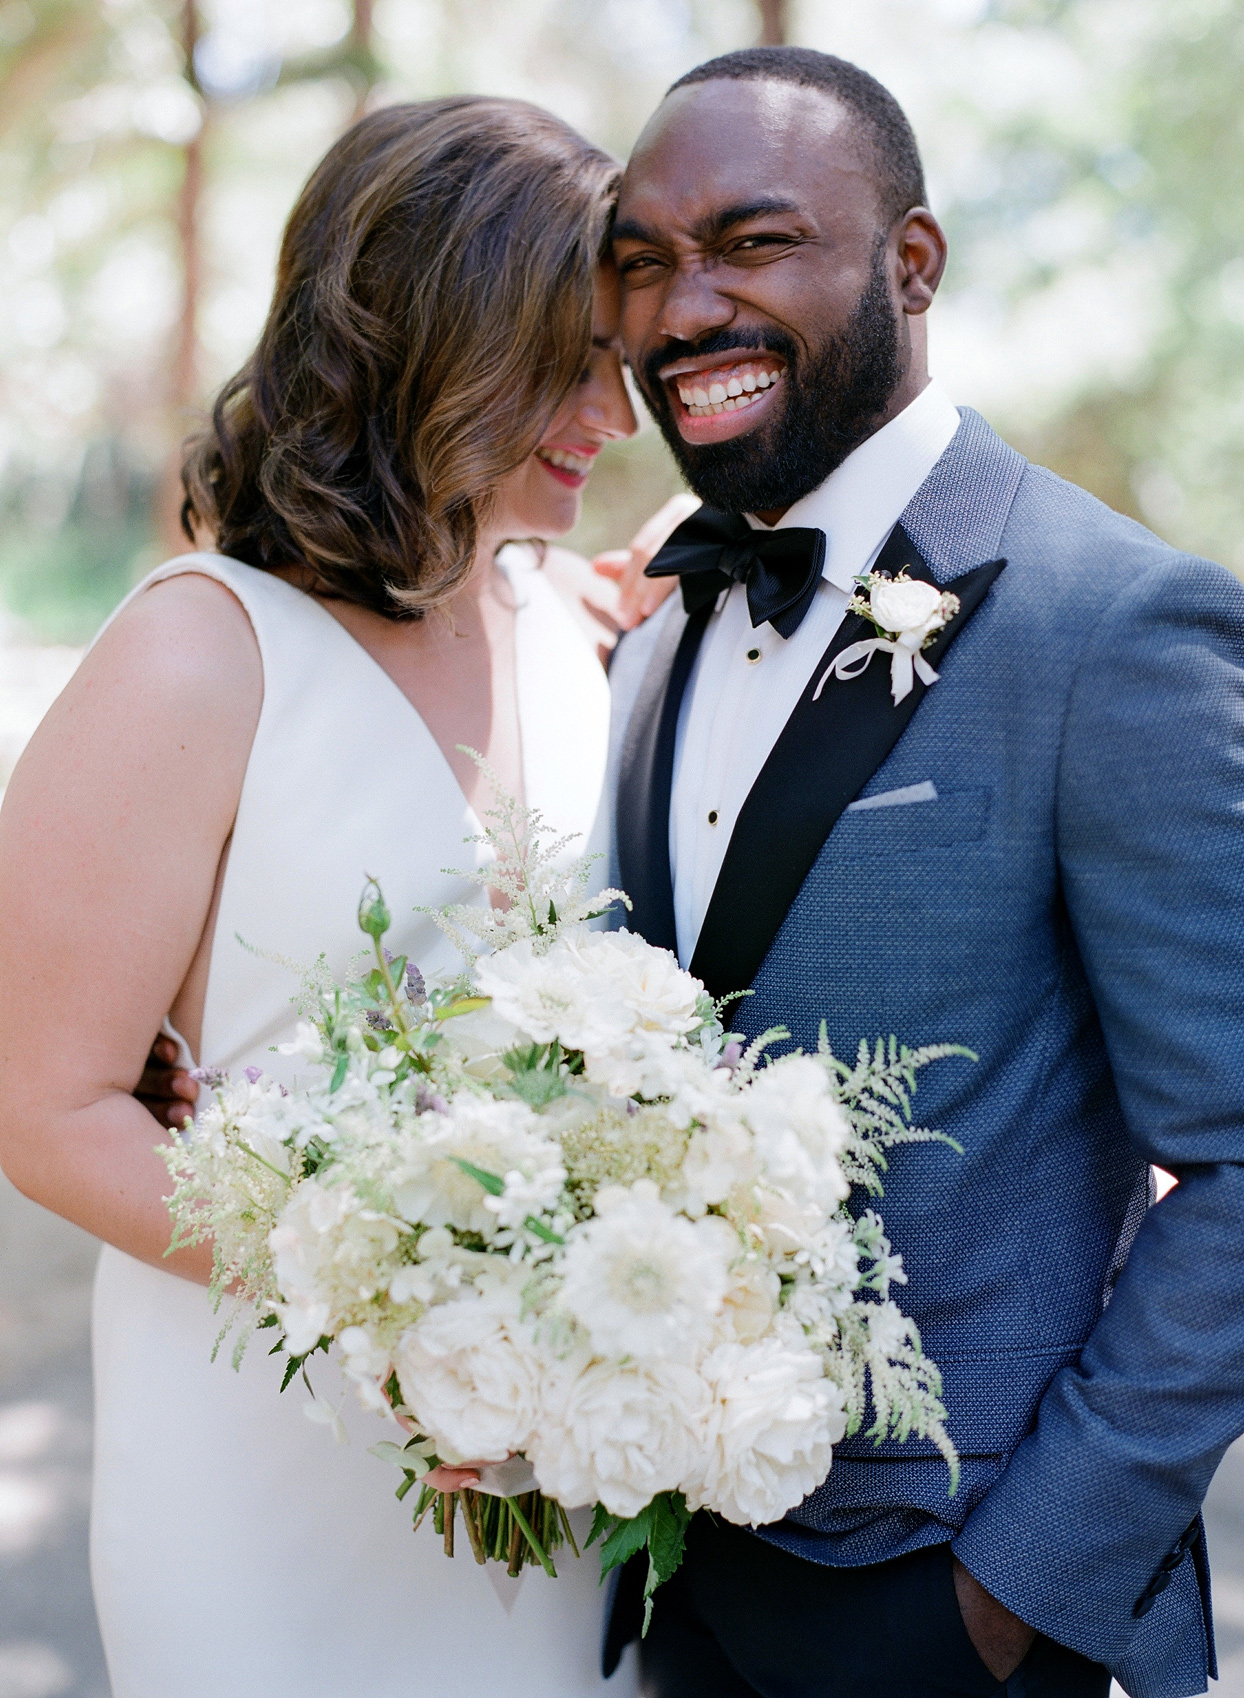 bride and groom smiling and laughing for wedding portrait photo outside